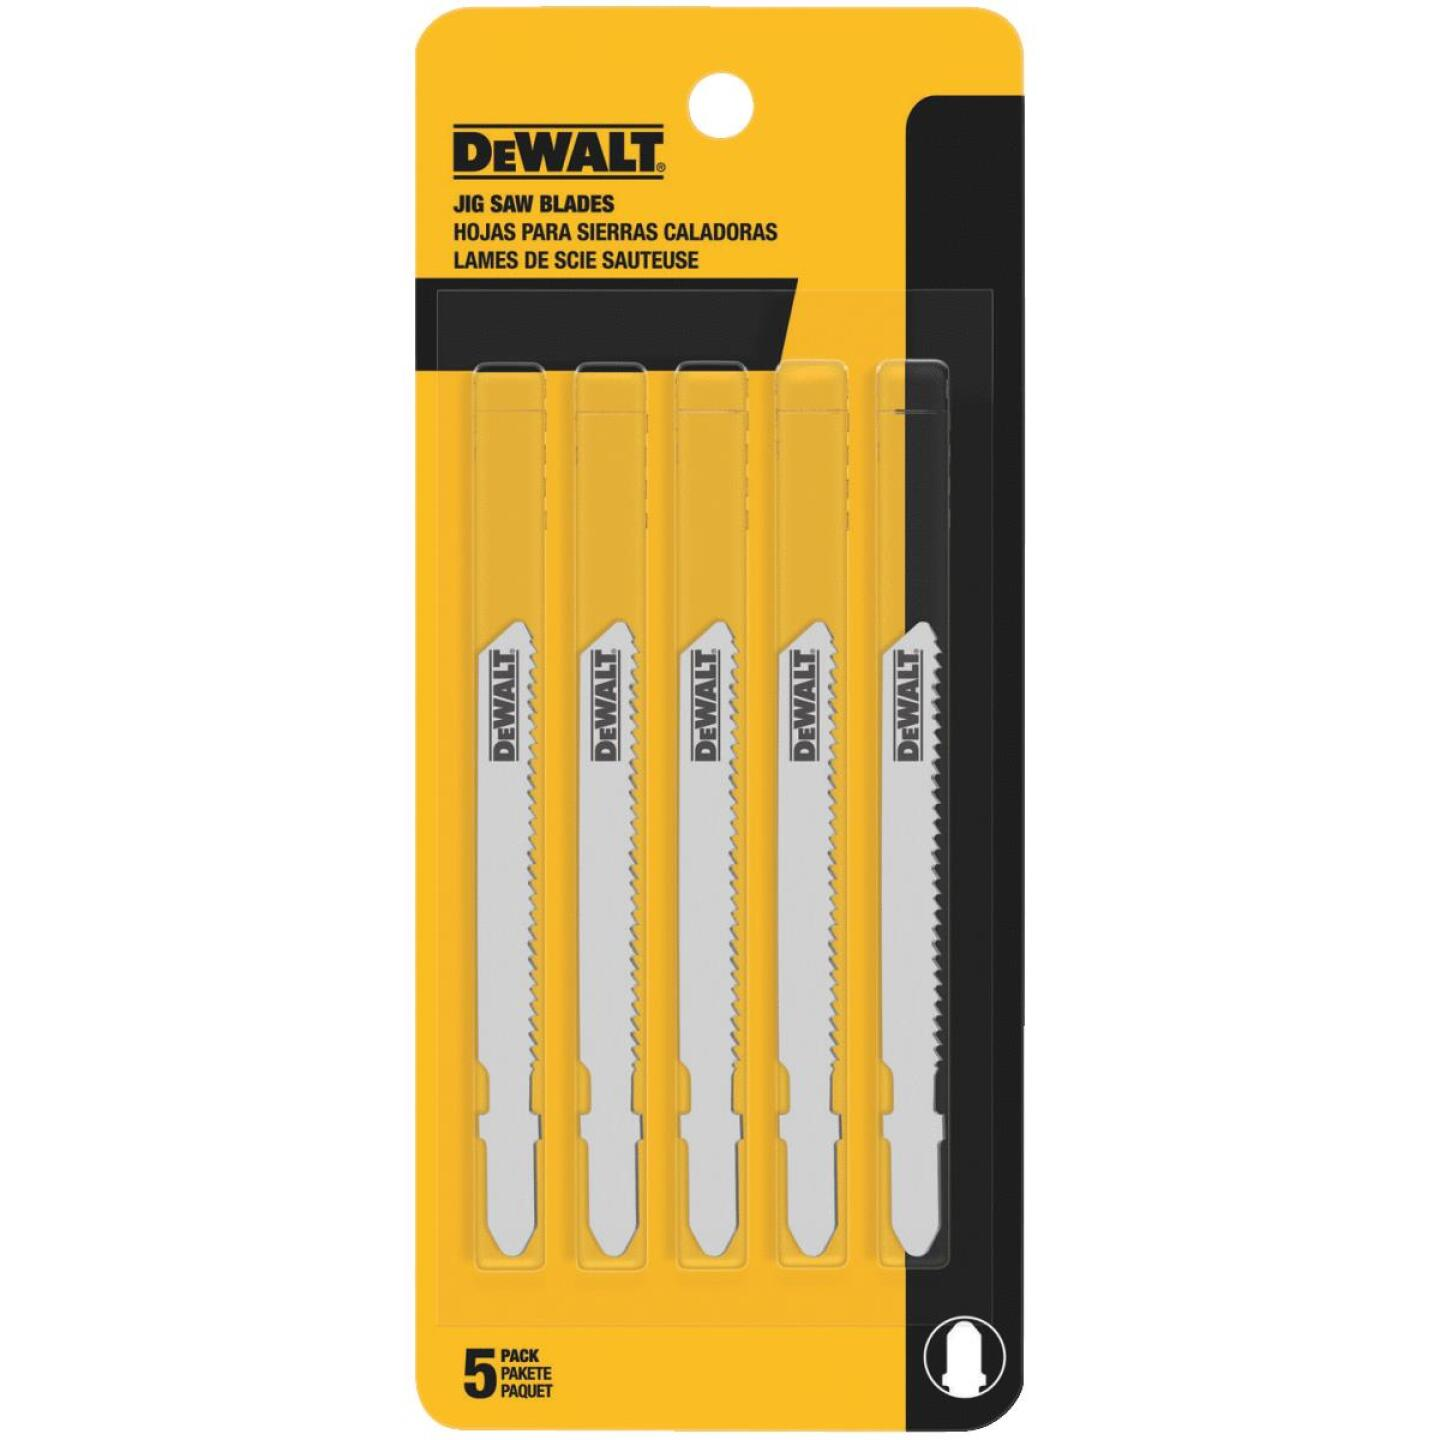 DeWalt T-Shank 3 In. x 24 TPI High Carbon Steel Jig Saw Blade, Thin Metal (5-Pack) Image 1